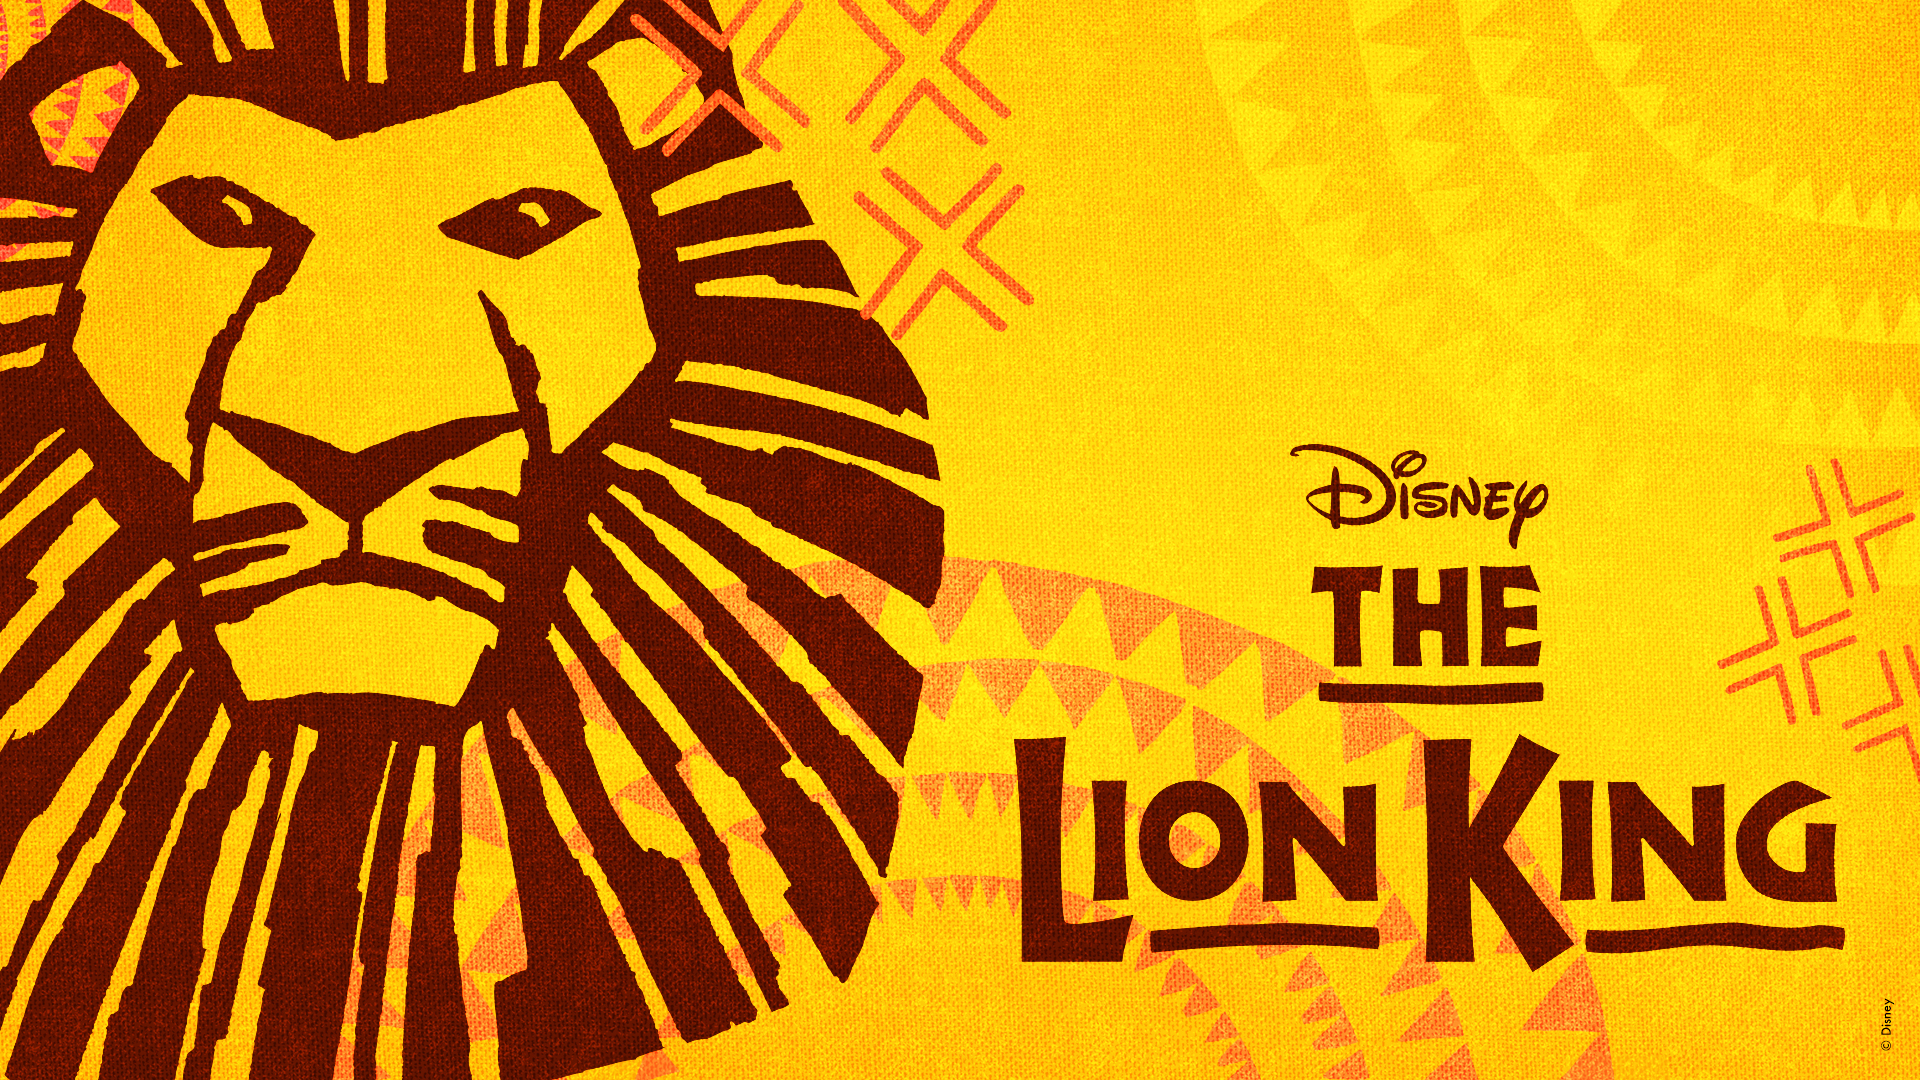 The iconic Disney's The Lion King logo.